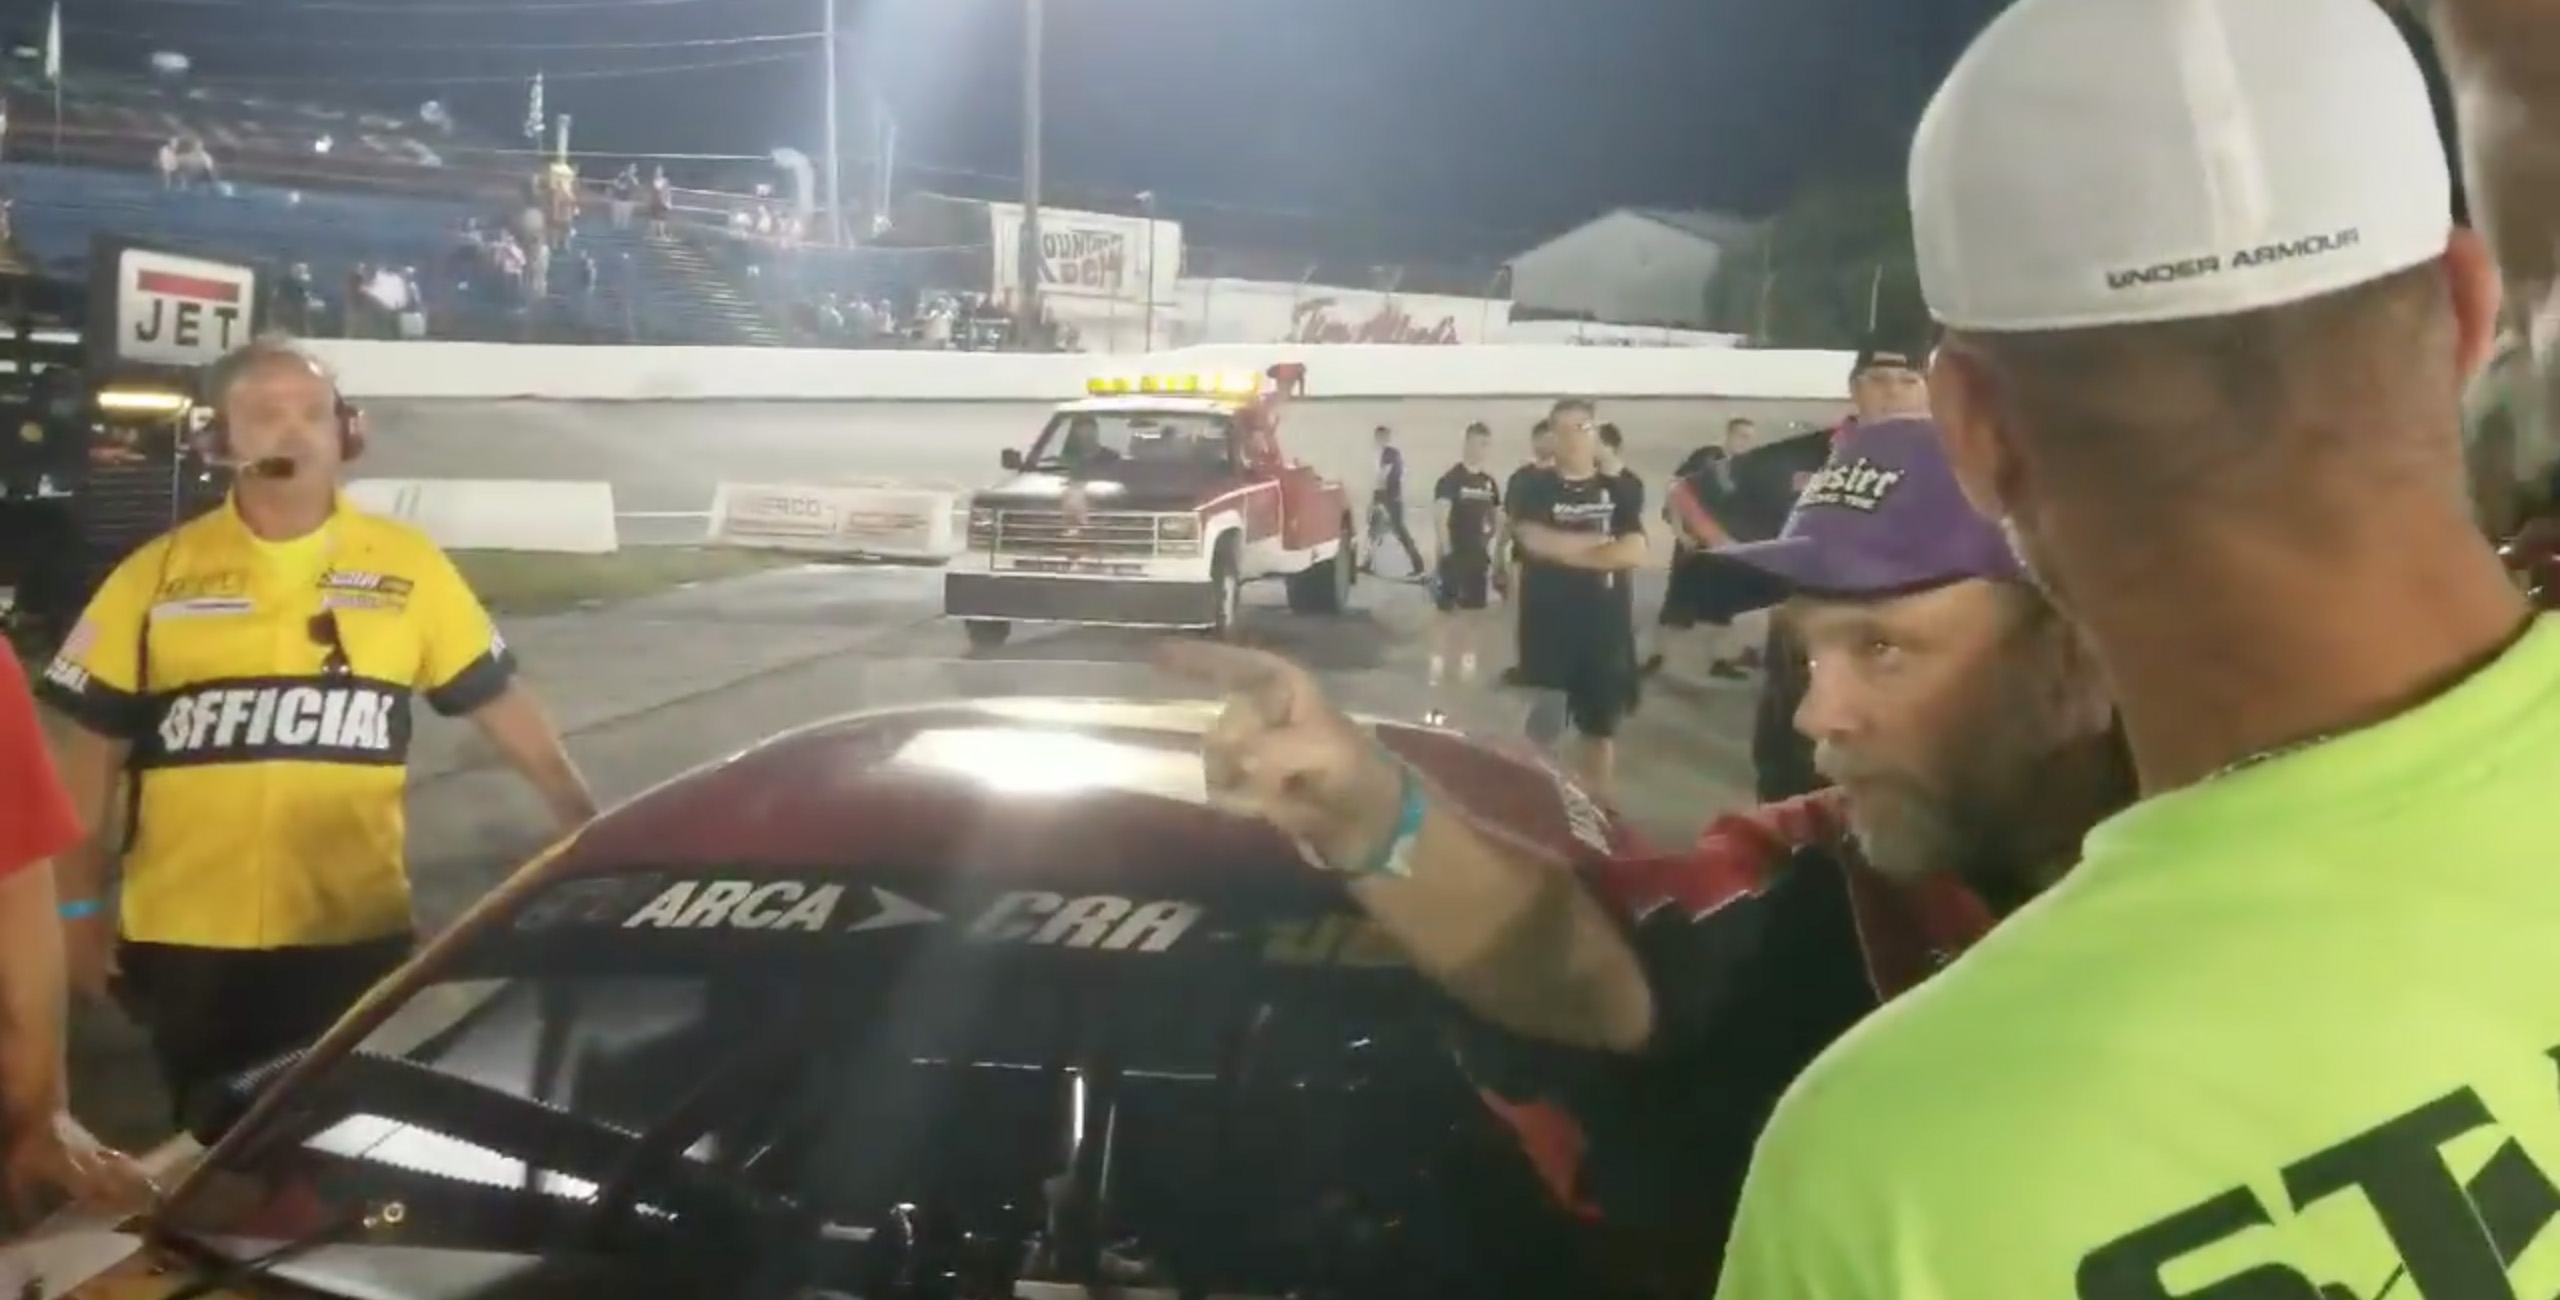 Anderson Speedway altercation